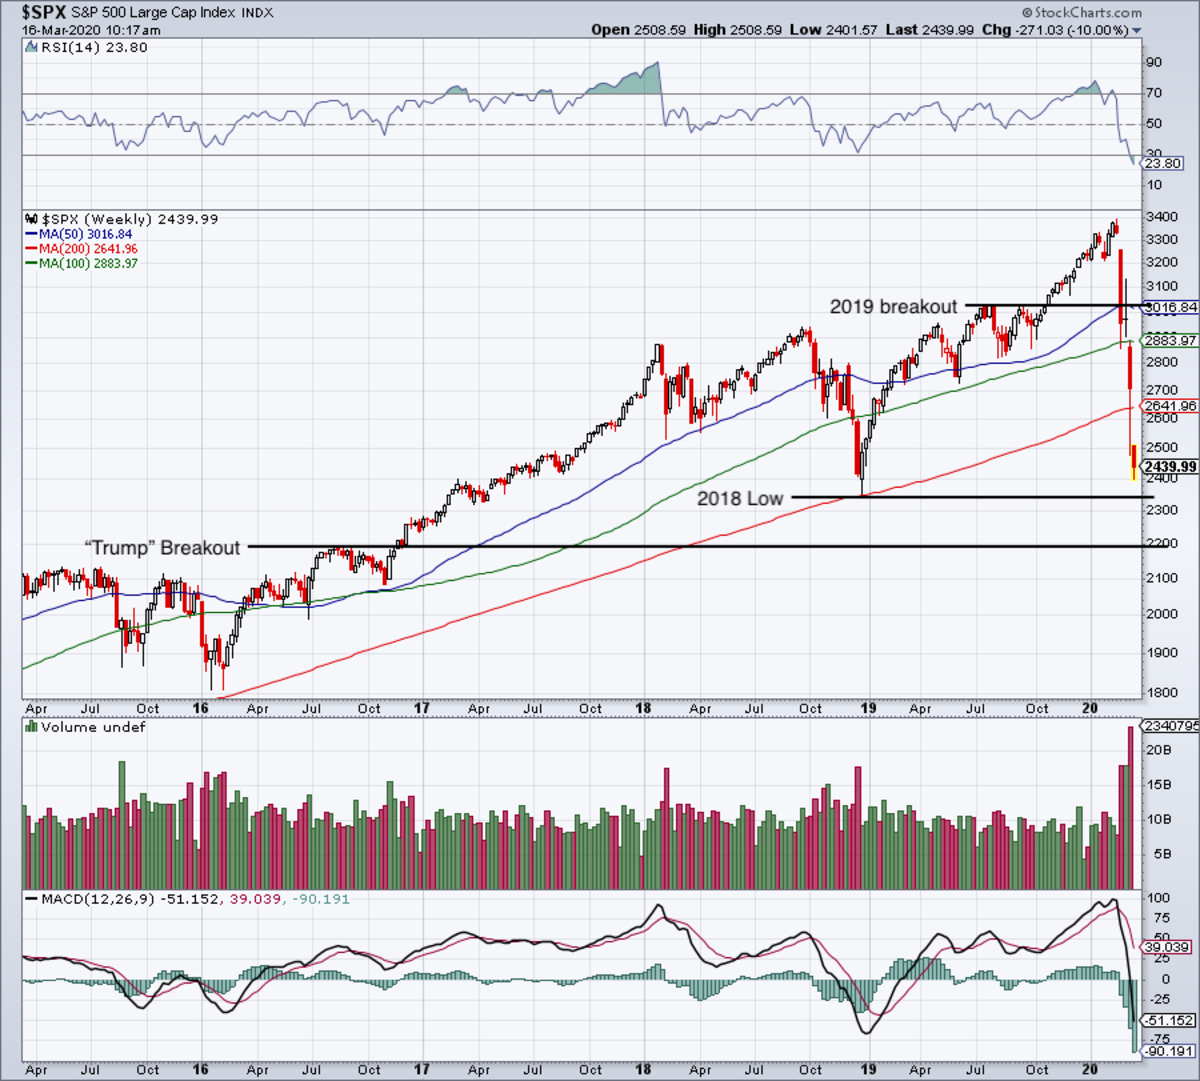 Weekly chart of the S&P 500